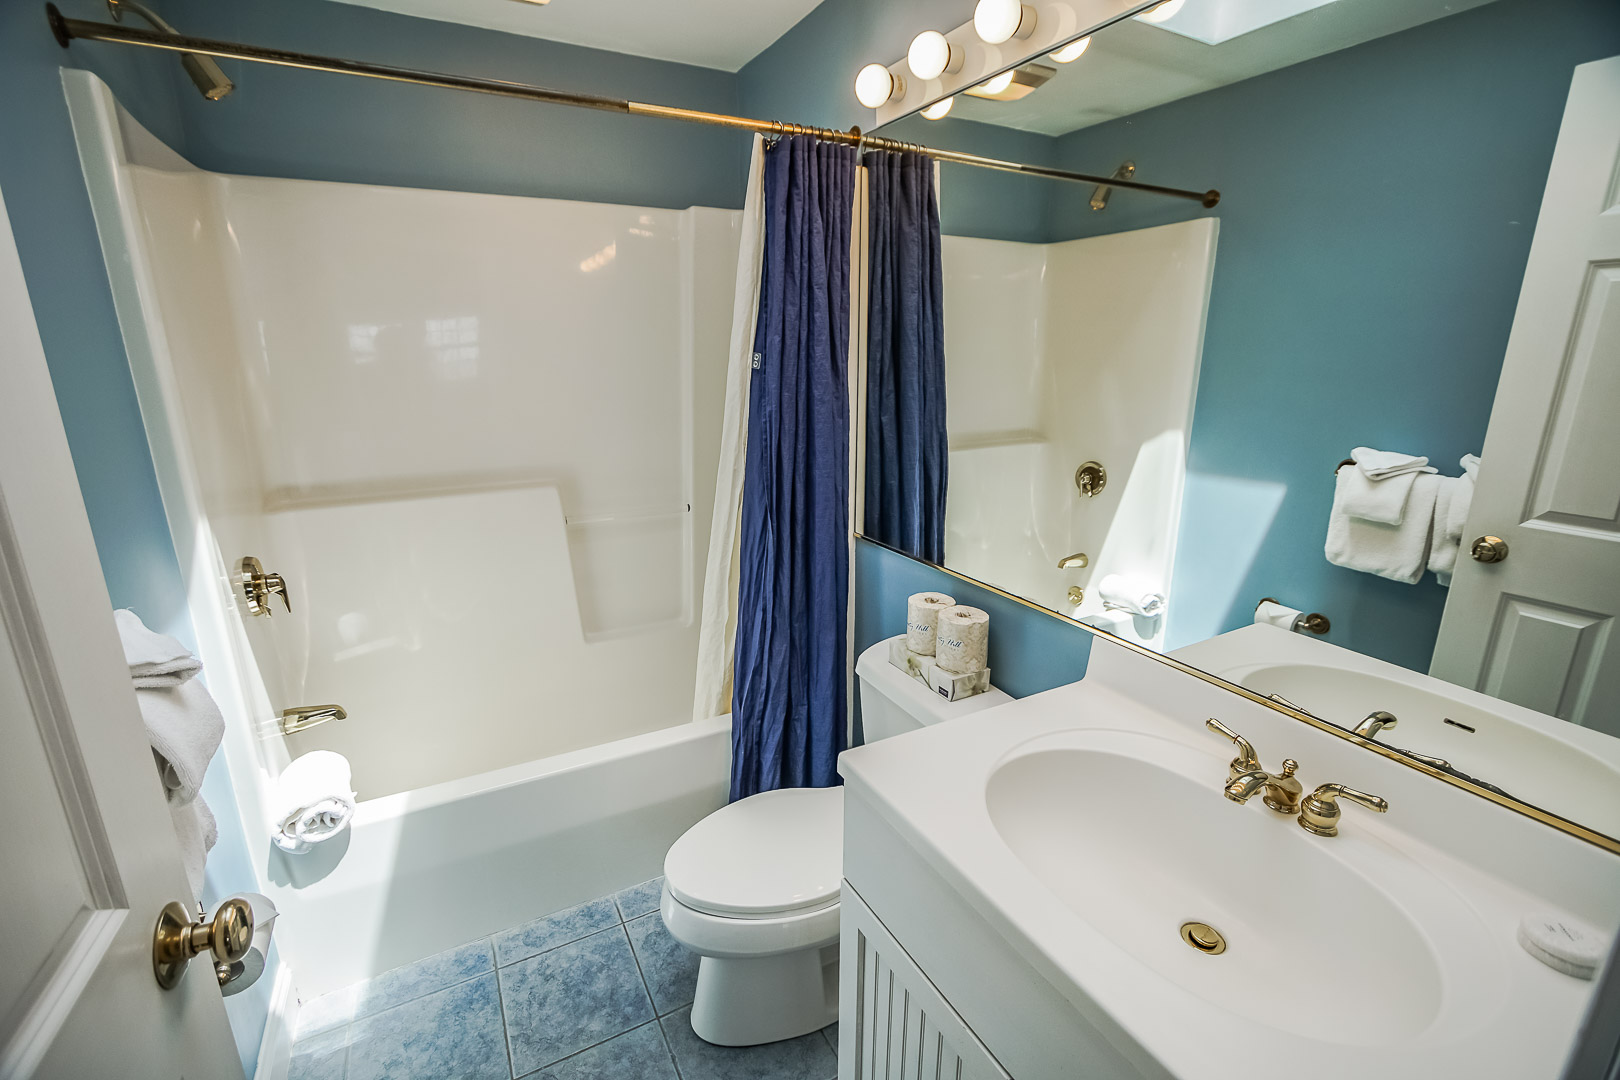 A clean bathroom at VRI's Beachside Village Resort in Massachusetts.